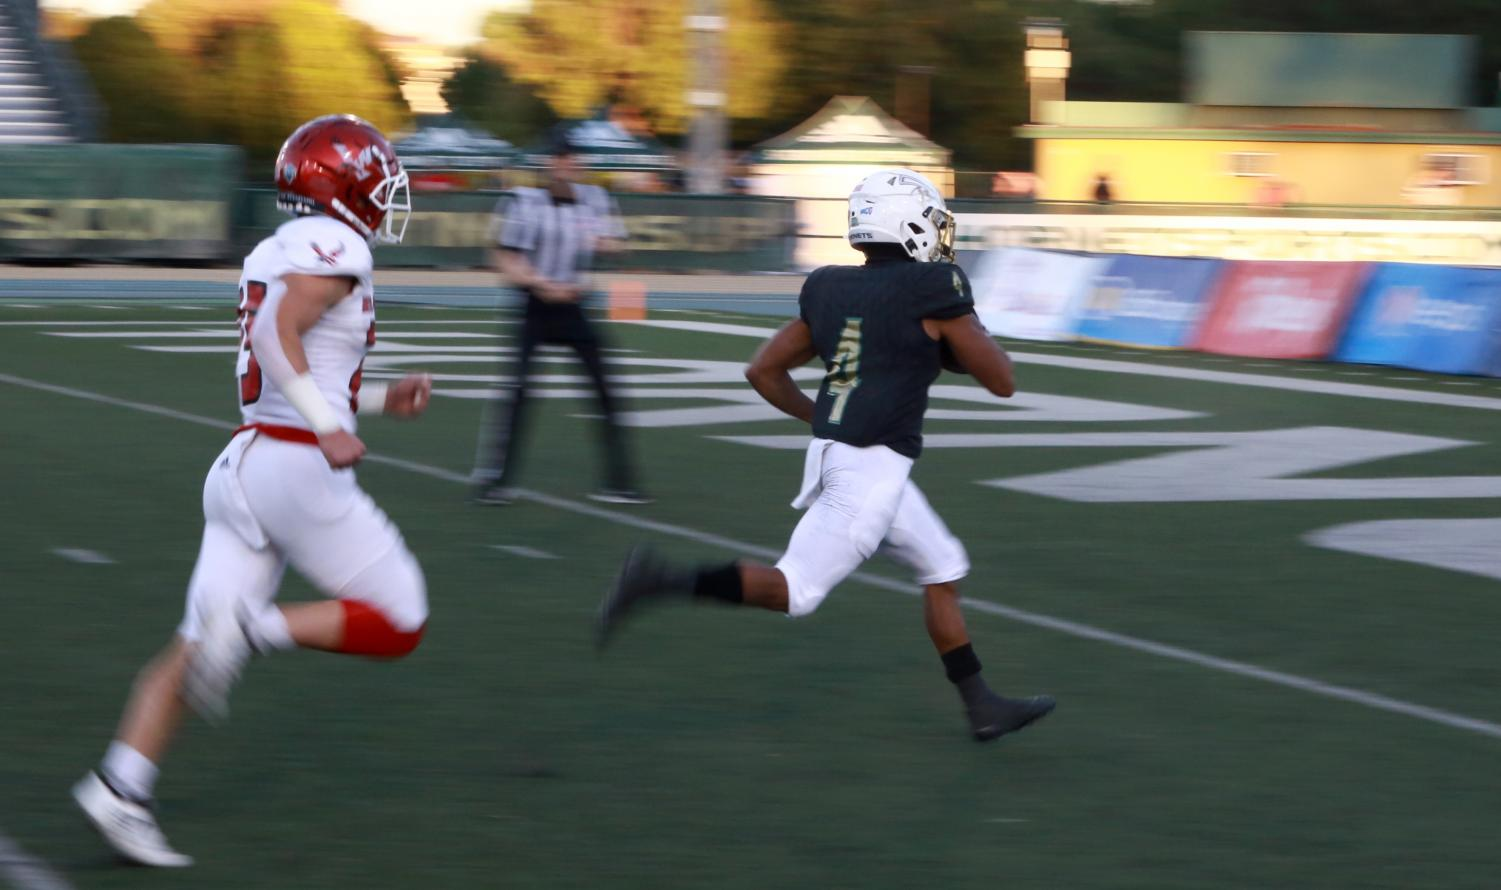 Sac State junior wide receiver Isiah Gable scores a 41 yard touchdown against Eastern Washington Saturday, Oct. 5 at Hornet Field. The Hornets defeated the Eagles 48-27.